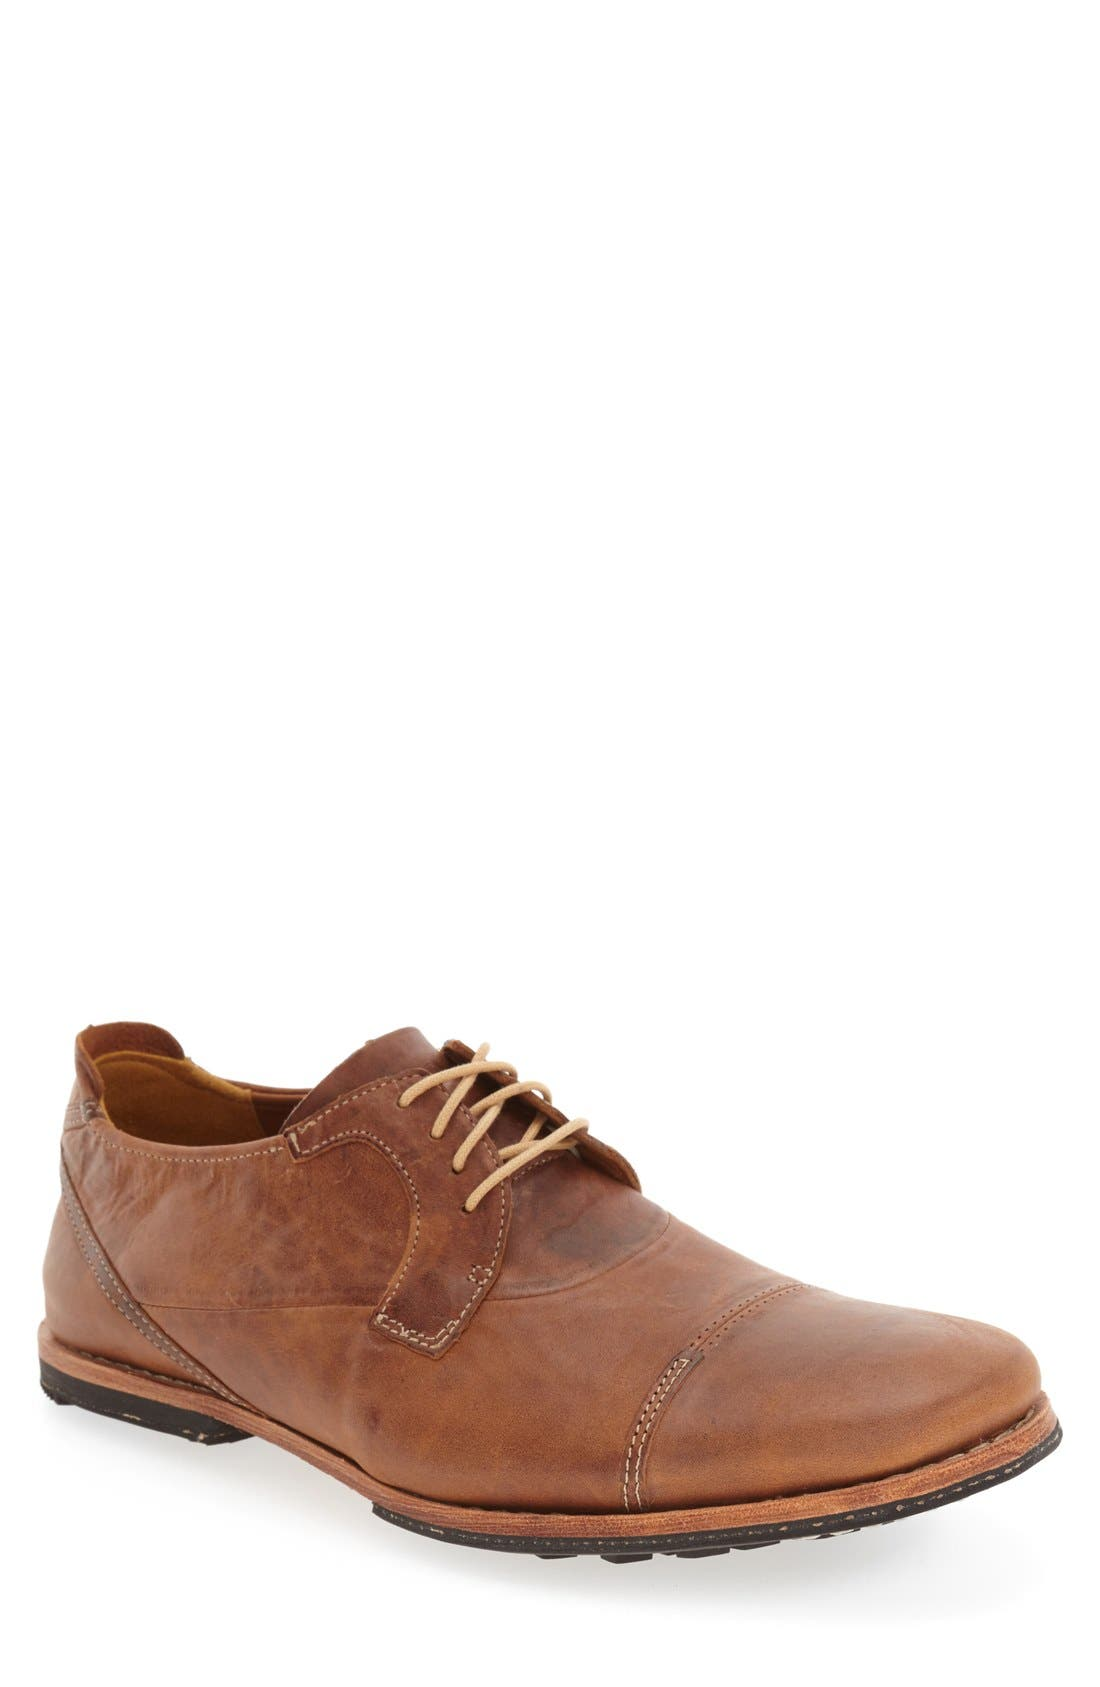 Main Image - Timberland 'Wodehouse Lost History' Cap Toe Oxford (Men)